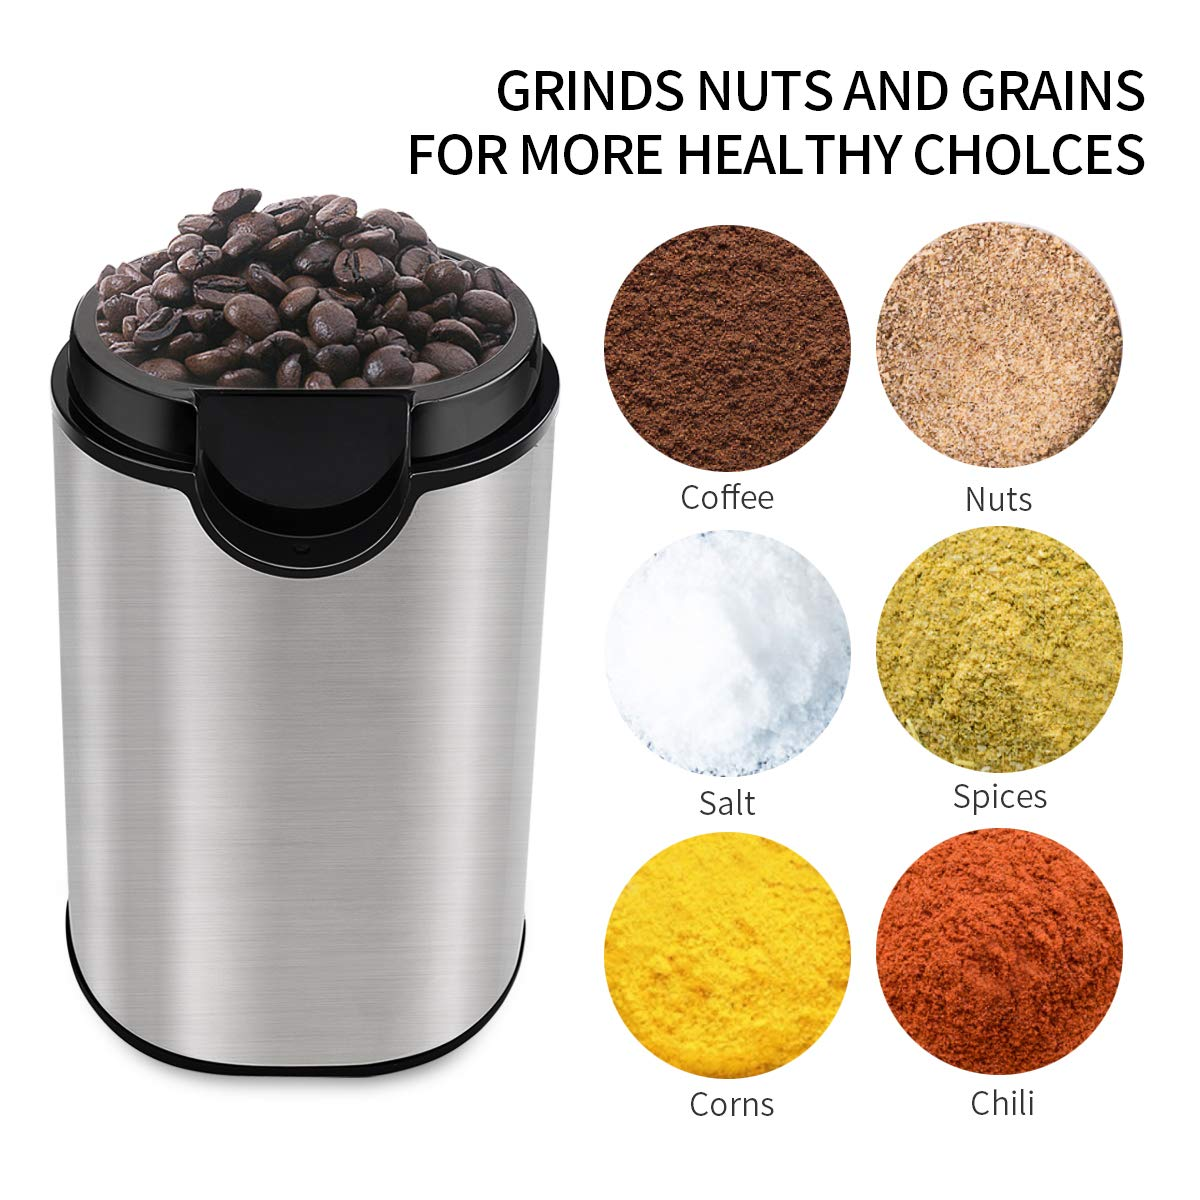 Electric Coffee Grinder with 304 Stainless Steel Blades for Coffee Beans, Nuts, Herbs, Grains Spices - Silver